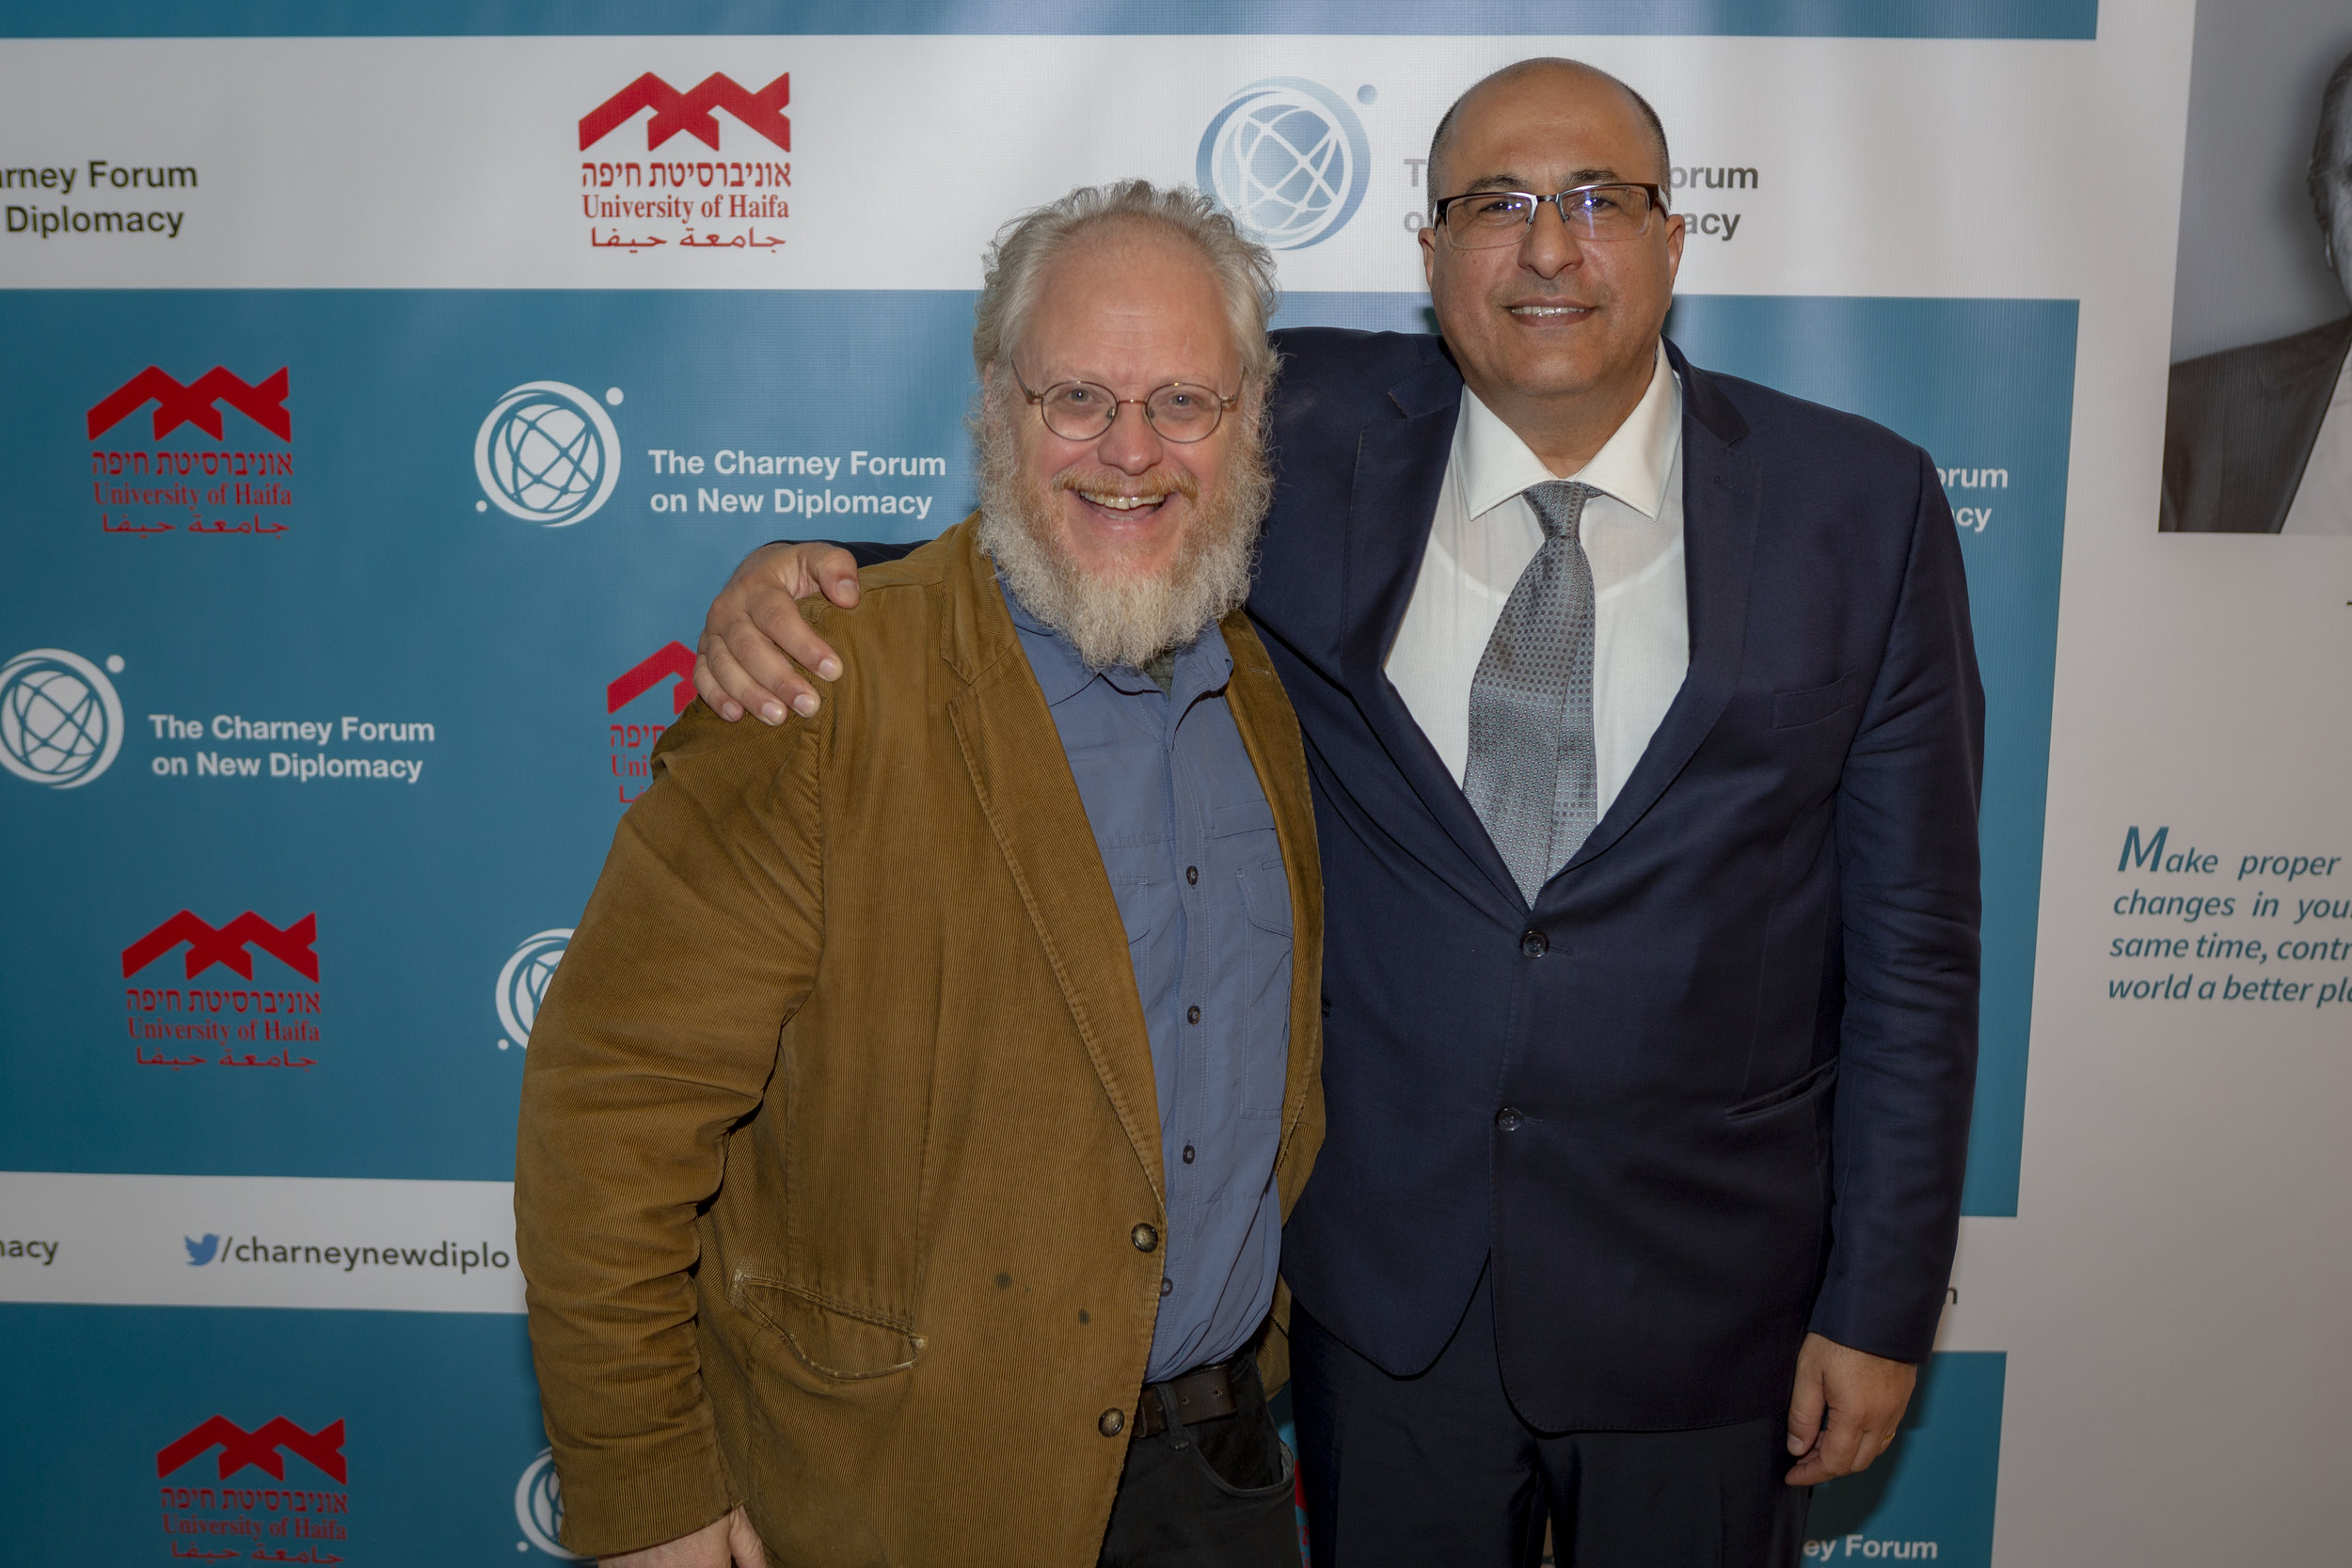 Professor Nick J. Cull and Ido Aharoni